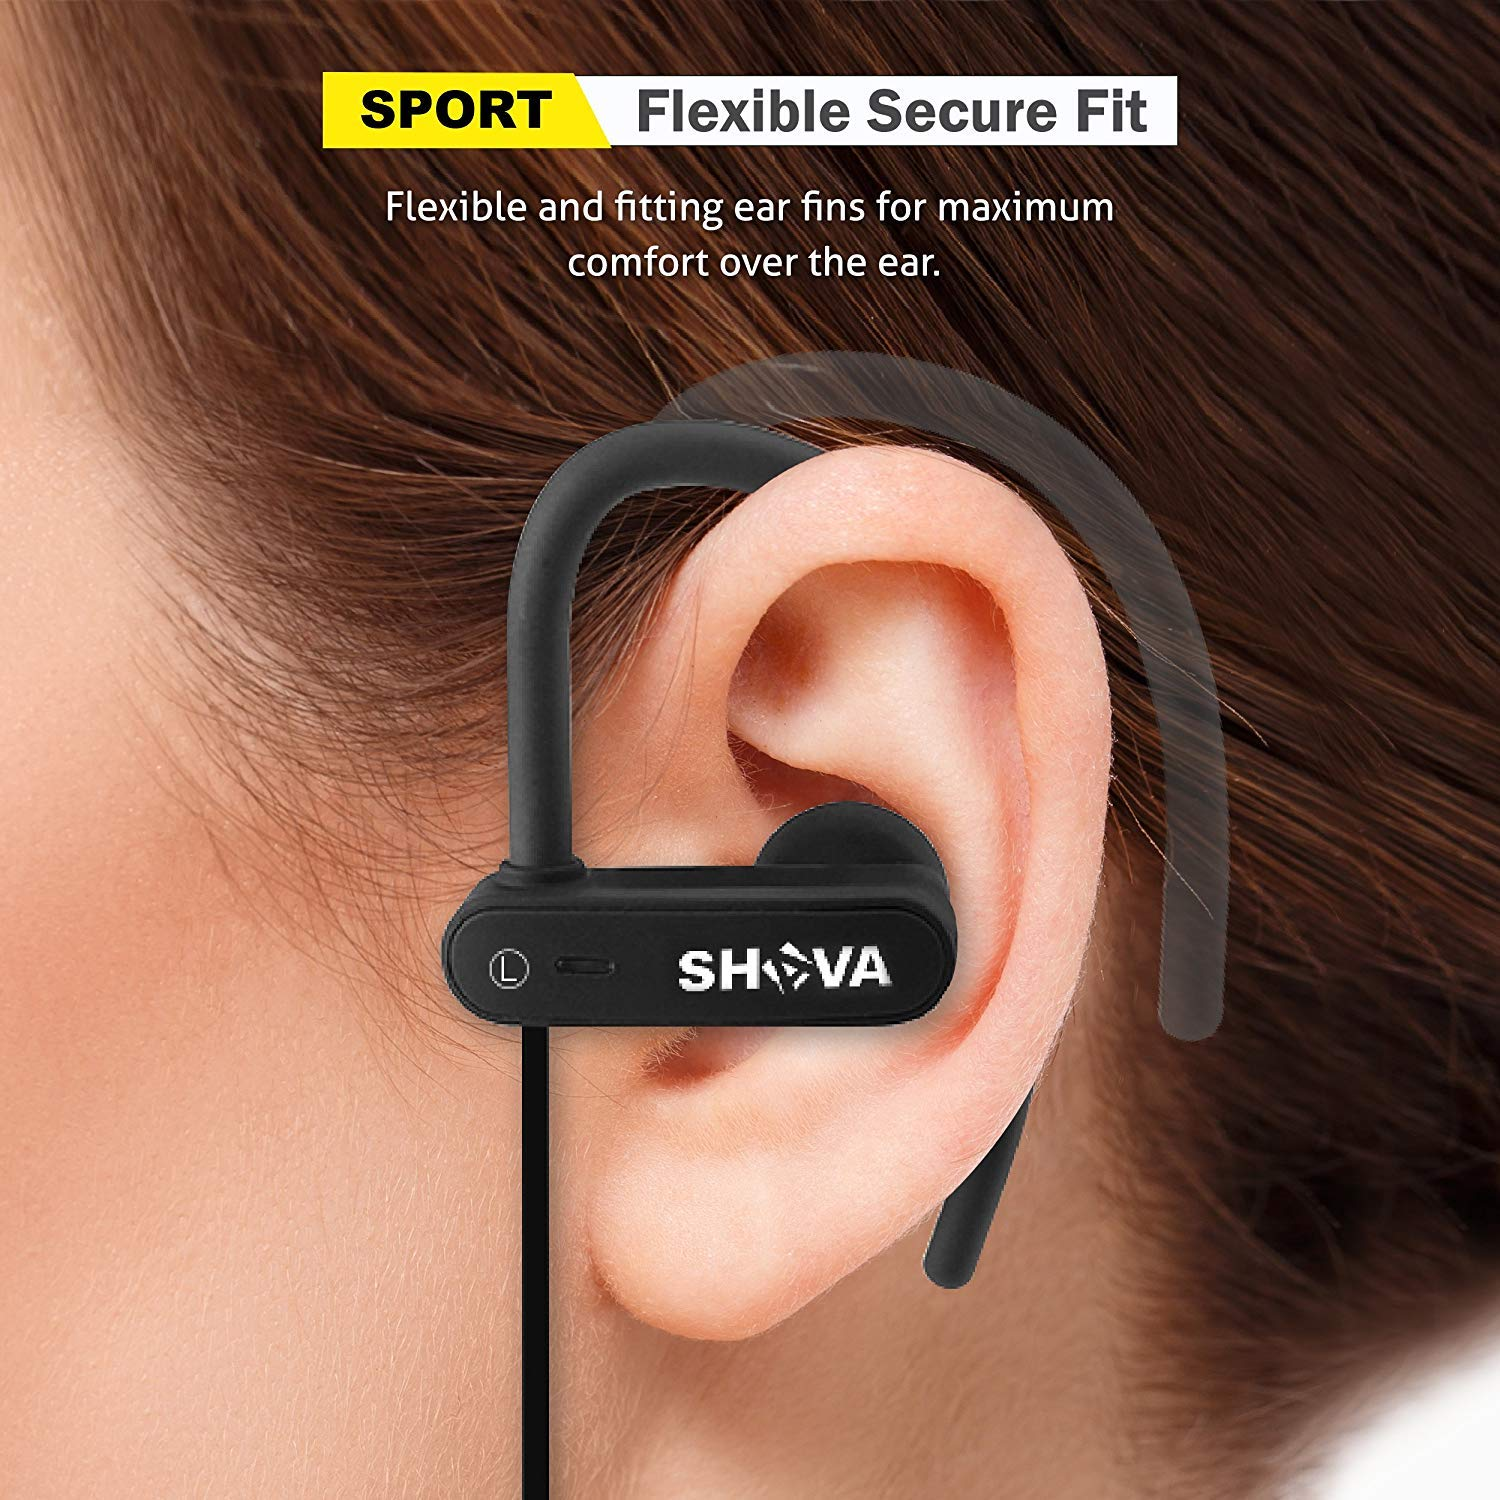 Wireless Headphones, SHAVA Sport Bluetooth Headphones is IPX7 Waterproof, Richer Bass HiFi Stereo Wireless Earbuds with Mic and Case, 8 hrs Playtime, Best for Running, Gym, Workout, All Sports(Black)